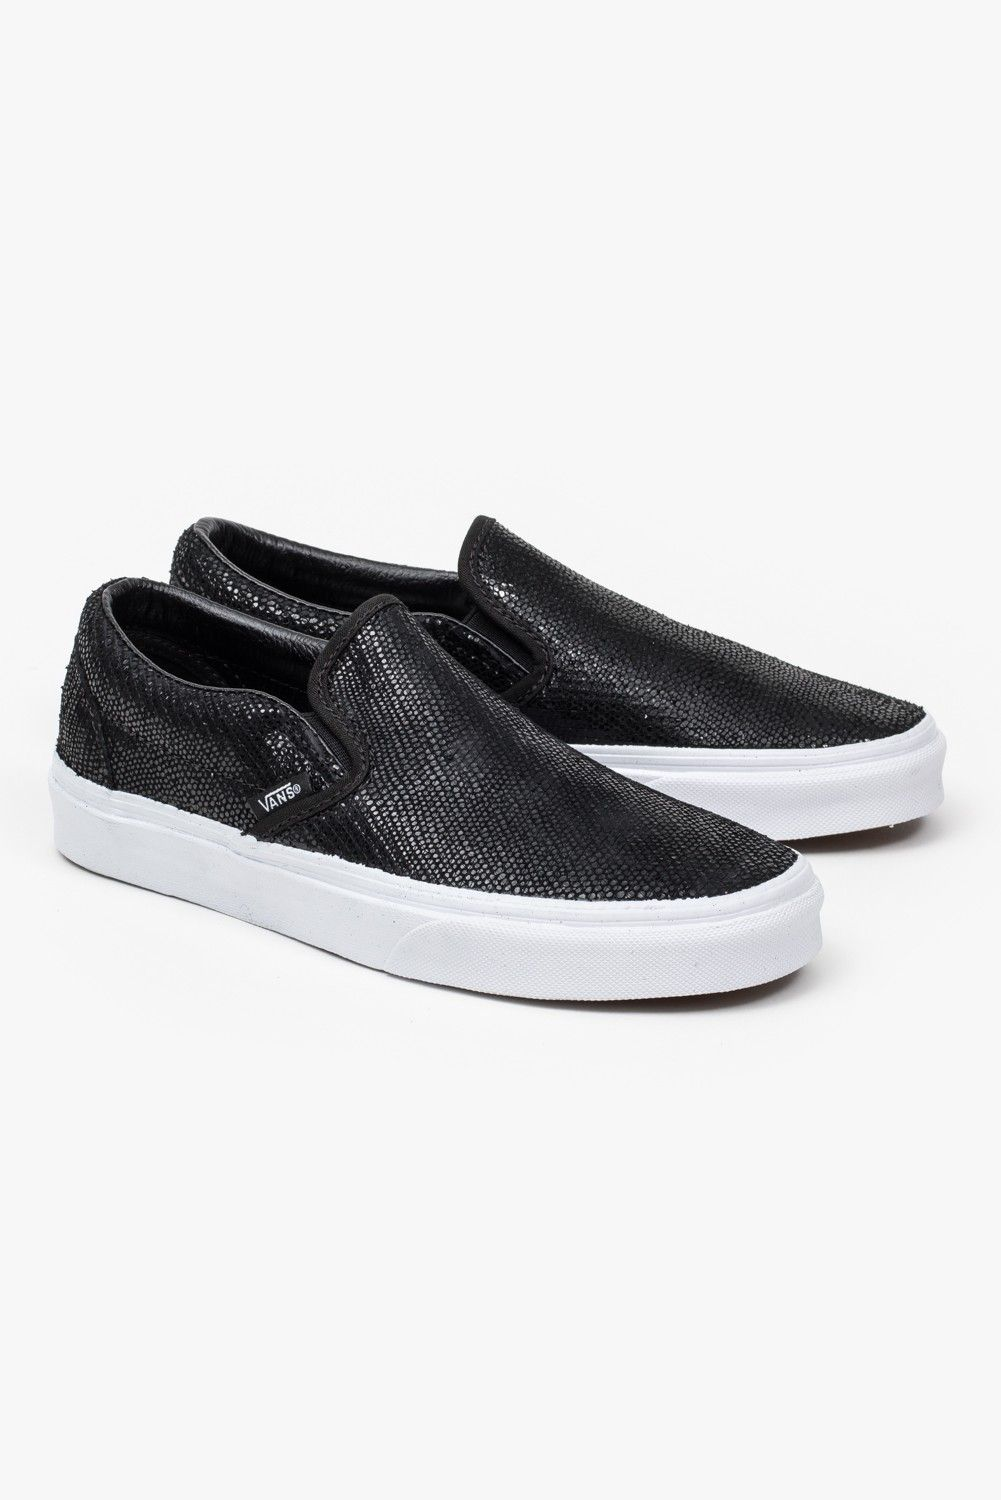 d0c06a3fb0 VANS (usually only for skaters) have a reasonably priced pair of slip-on  trainers in a good variety of colours - around NZ 149